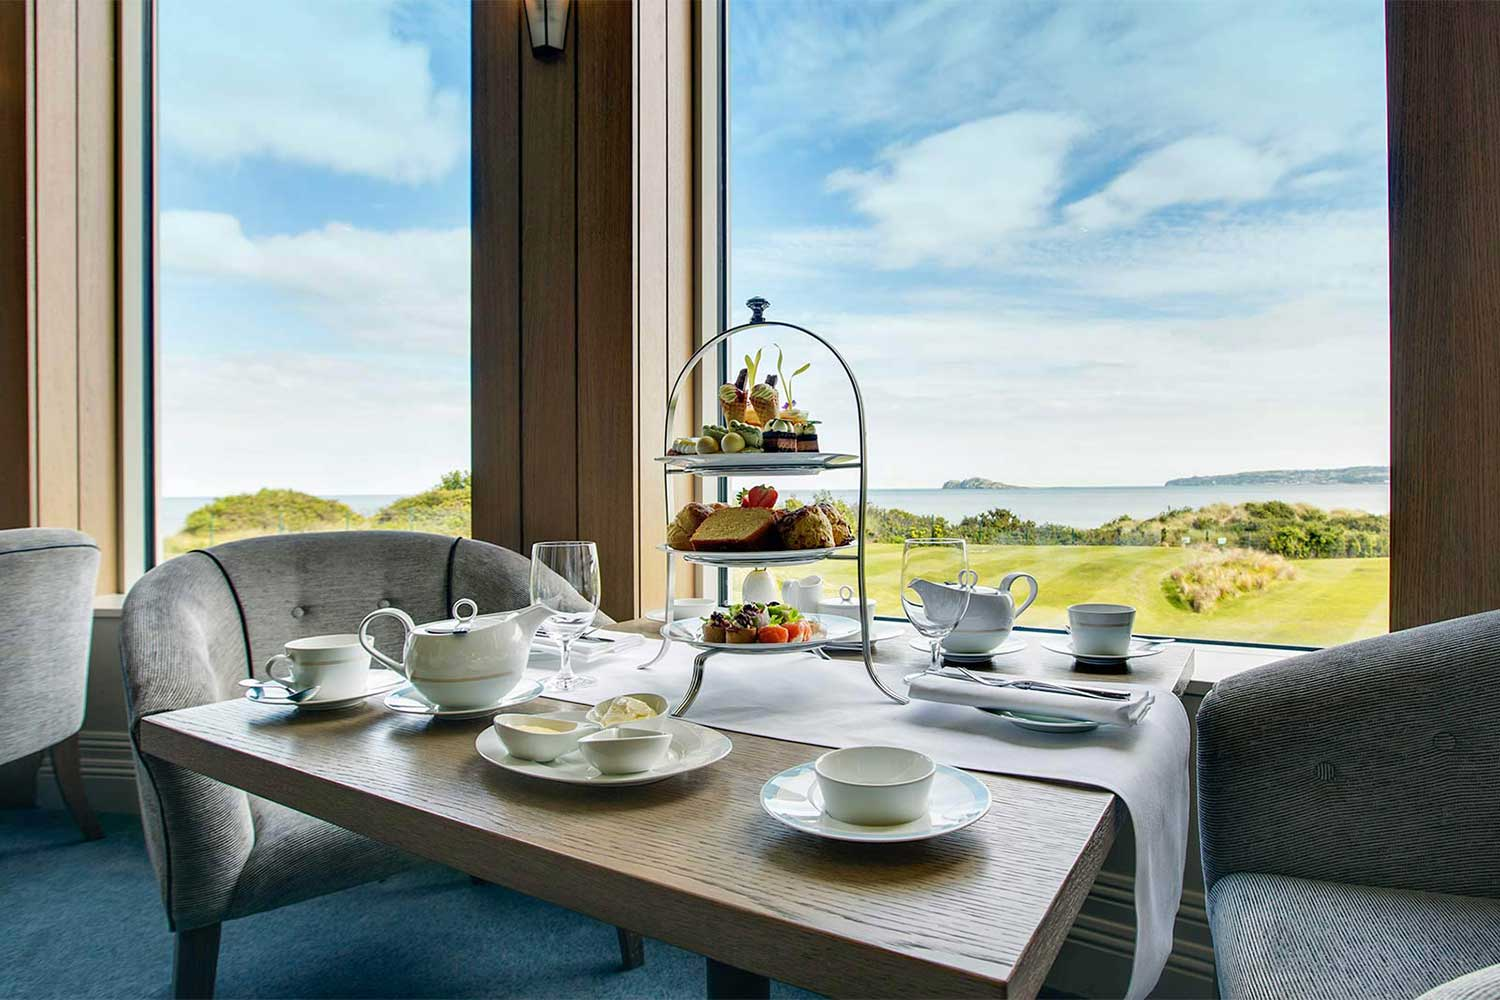 Afternoon tea and beautiful sea view